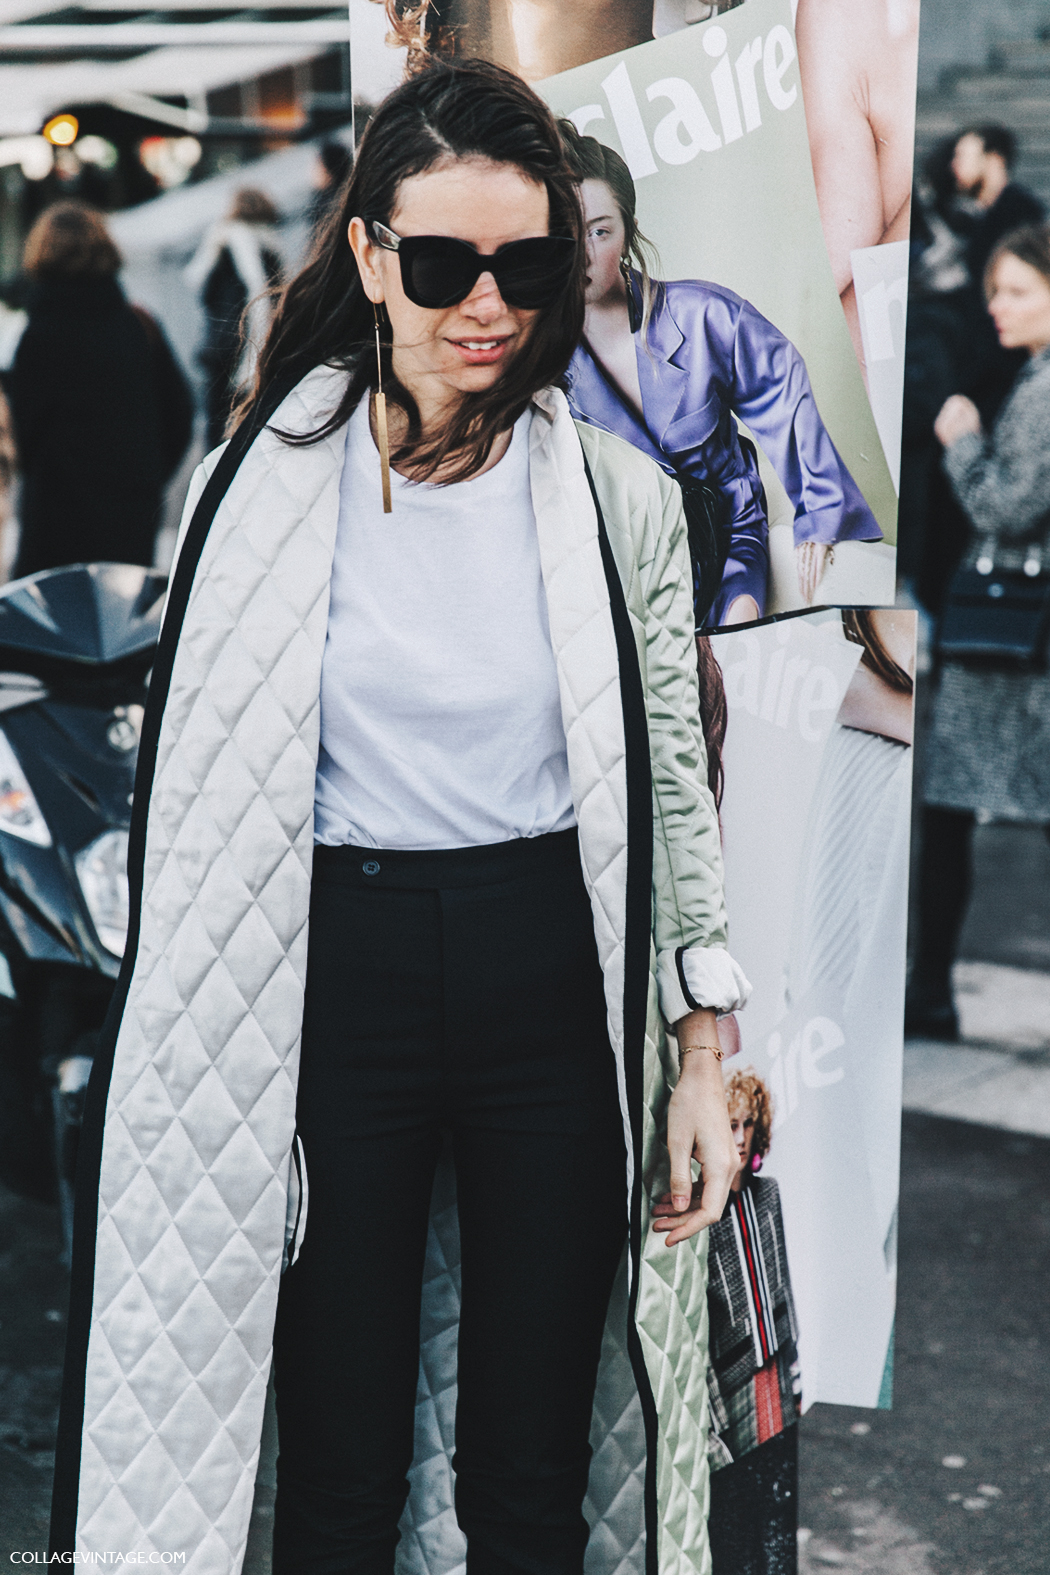 PFW-Paris_Fashion_Week_Fall_2016-Street_Style-Collage_Vintage-Natasha_Goldenberg-9